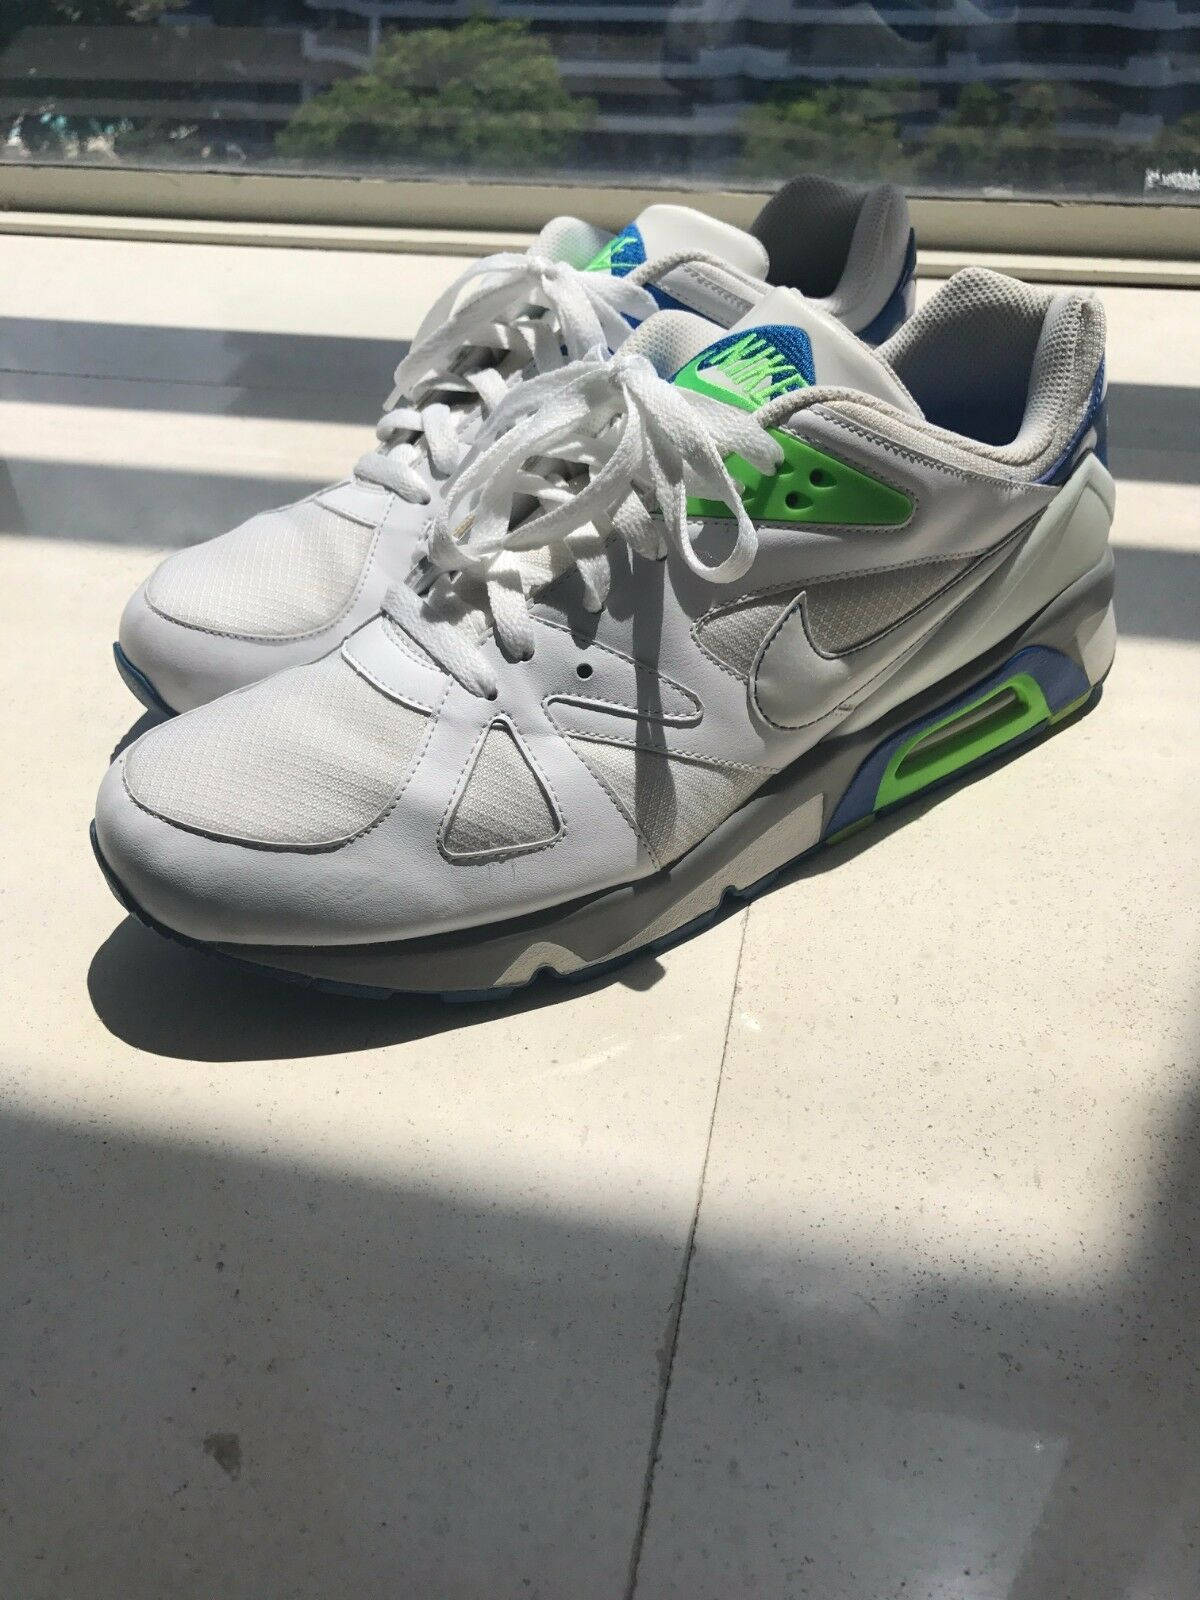 NIKE AIR STRUCTURE TRIAX US 12 white grey blue green Seasonal clearance sale